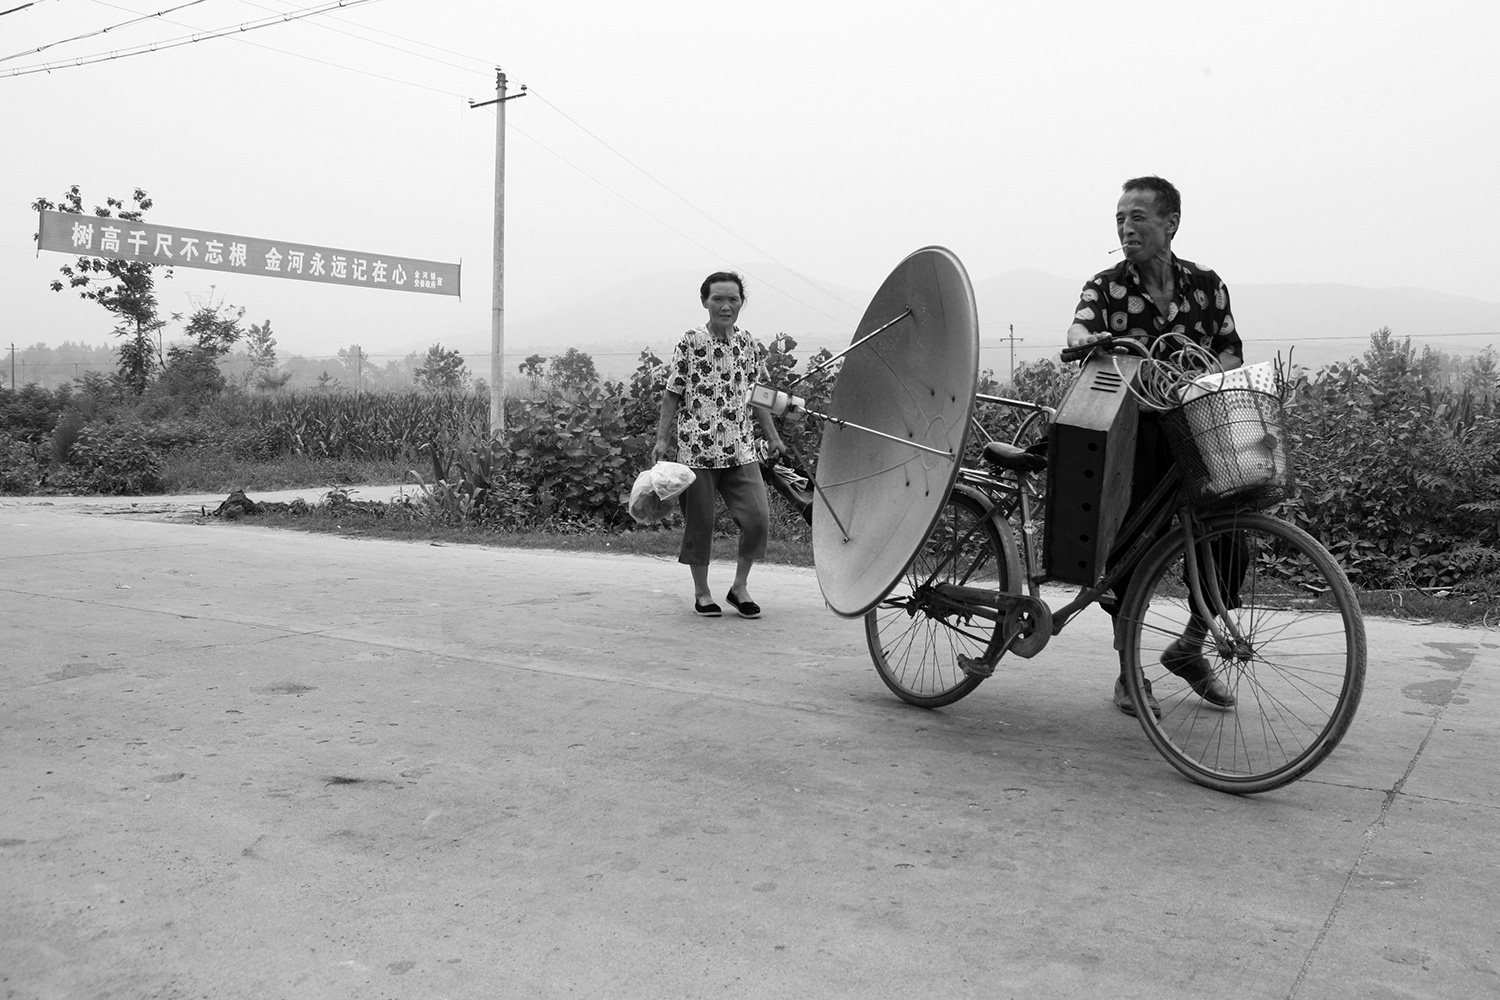 A farmer brings his dismantled TV antenna equipment with him as he leaves Jinhe. Nearly all material goods, with even the slightest bit of worth, were carted away; little was left behind.